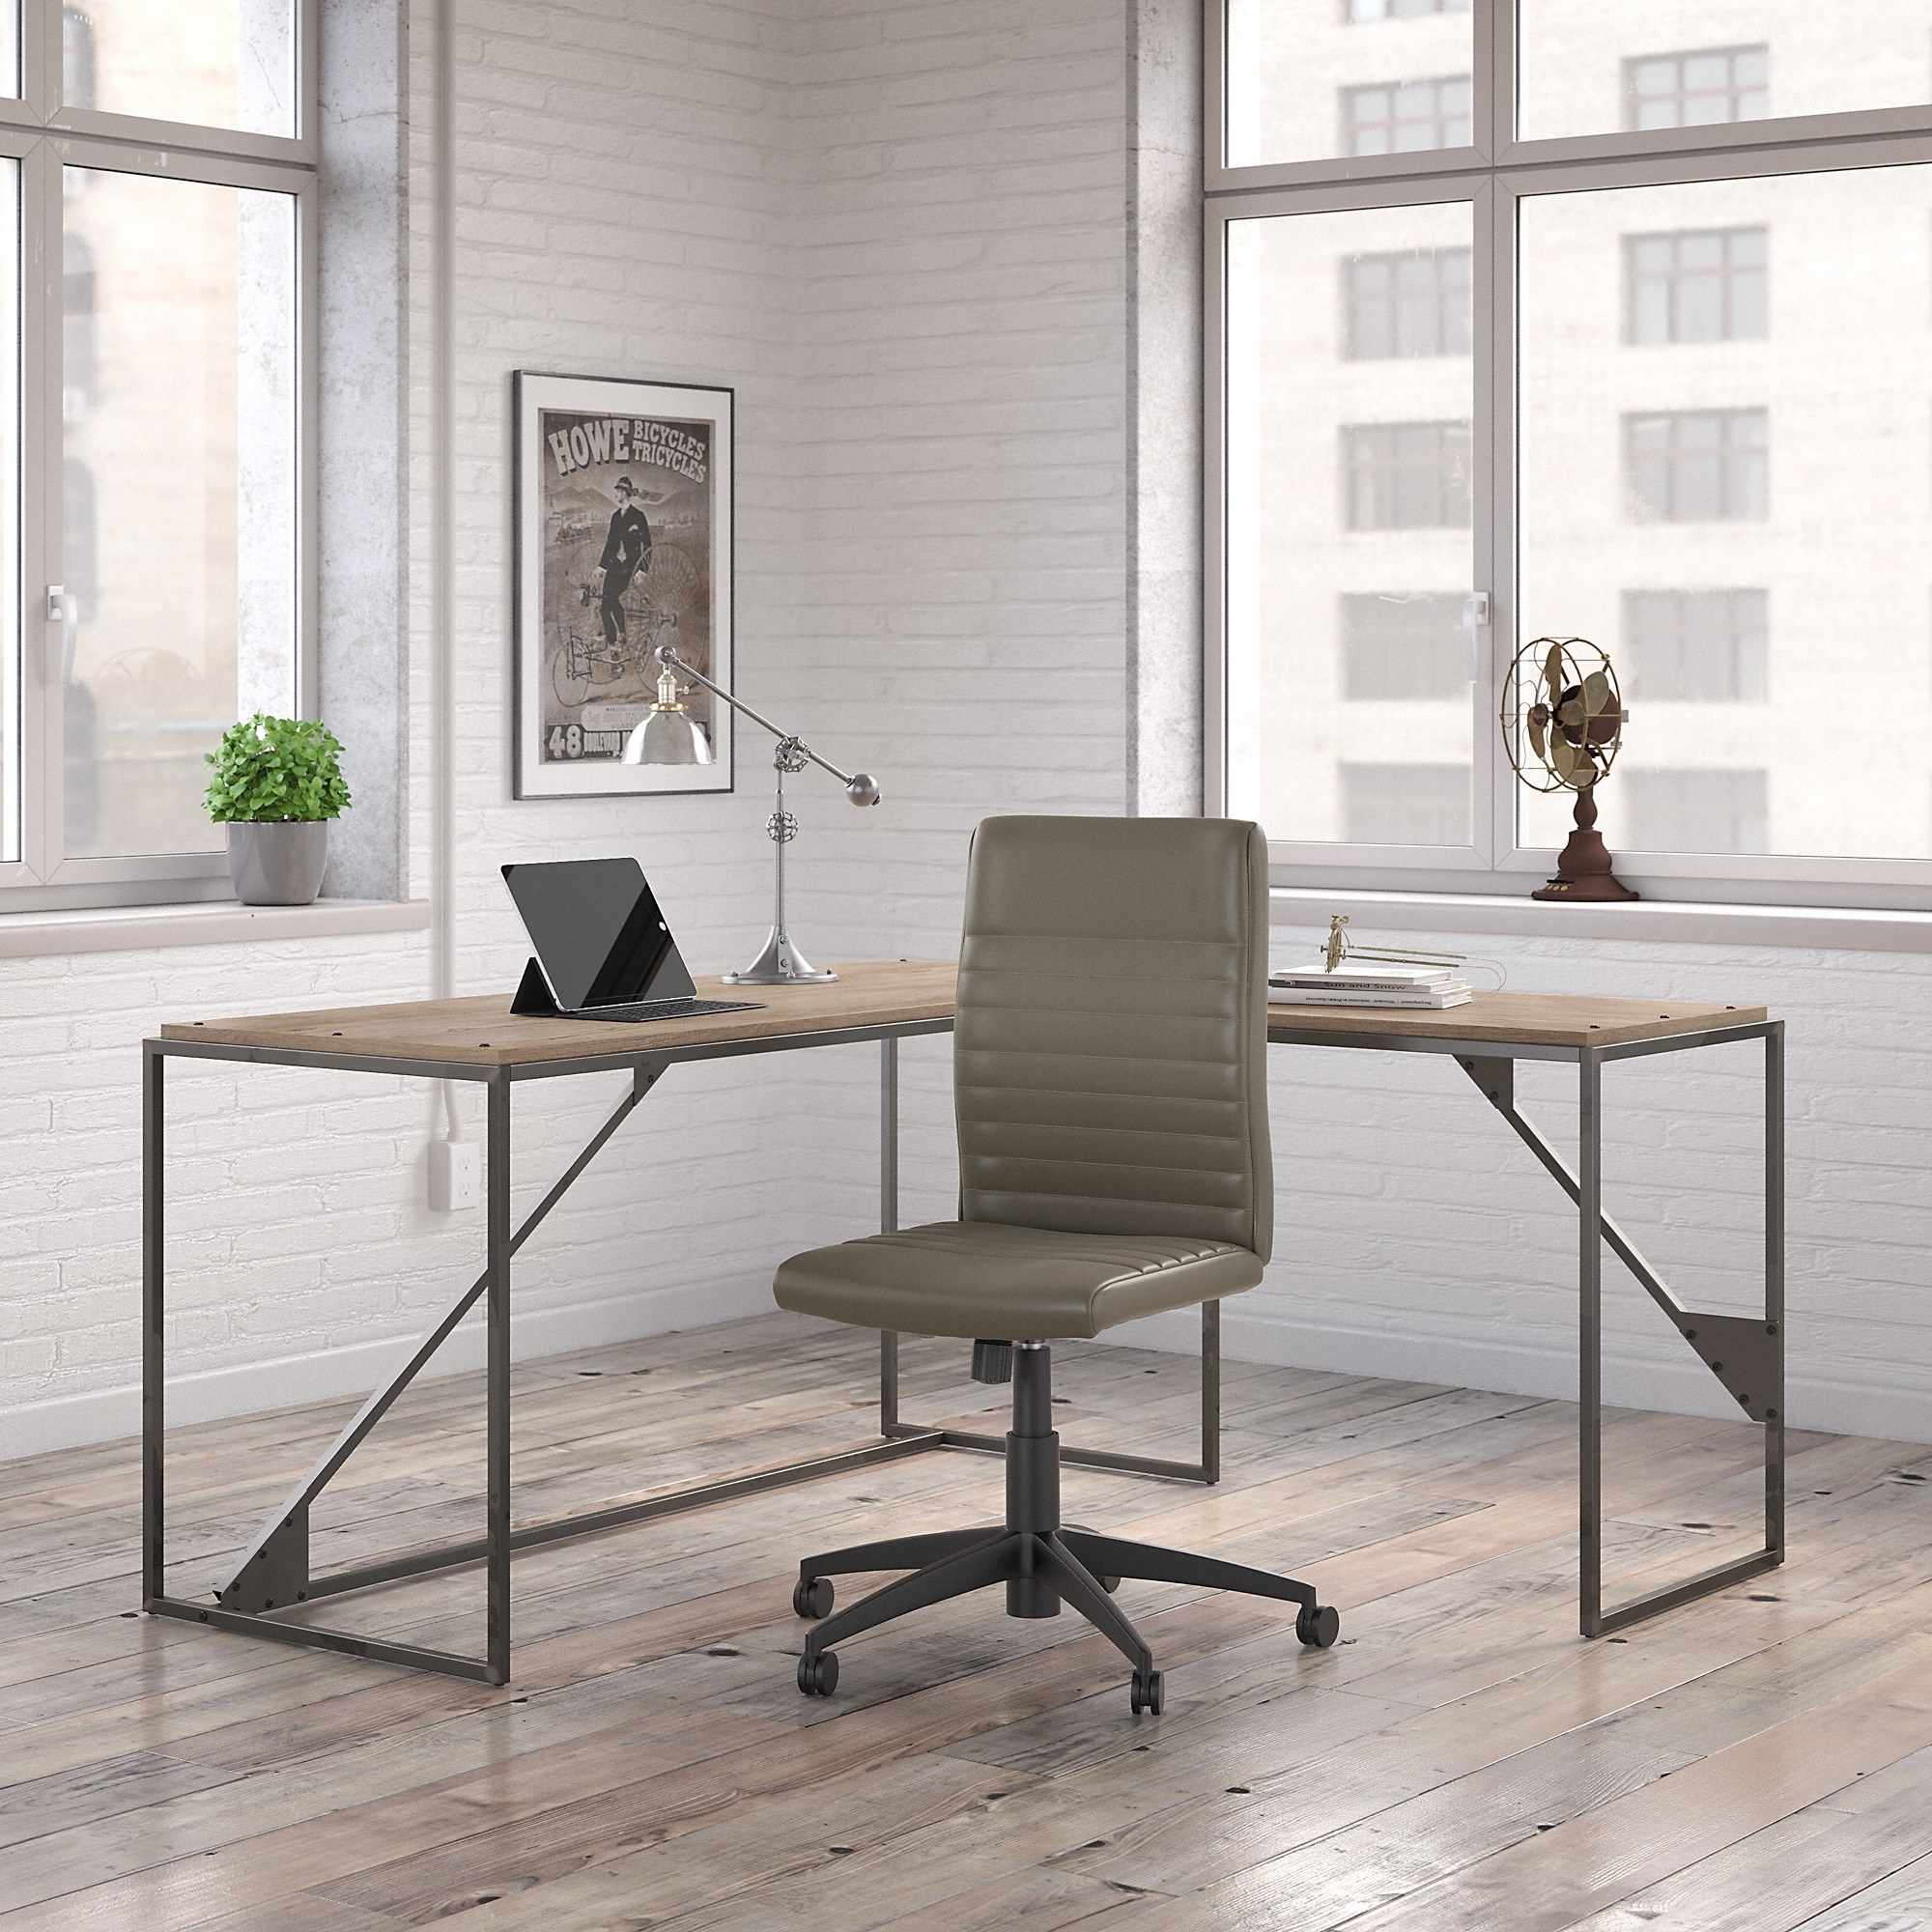 A grey/tan desk and a chair